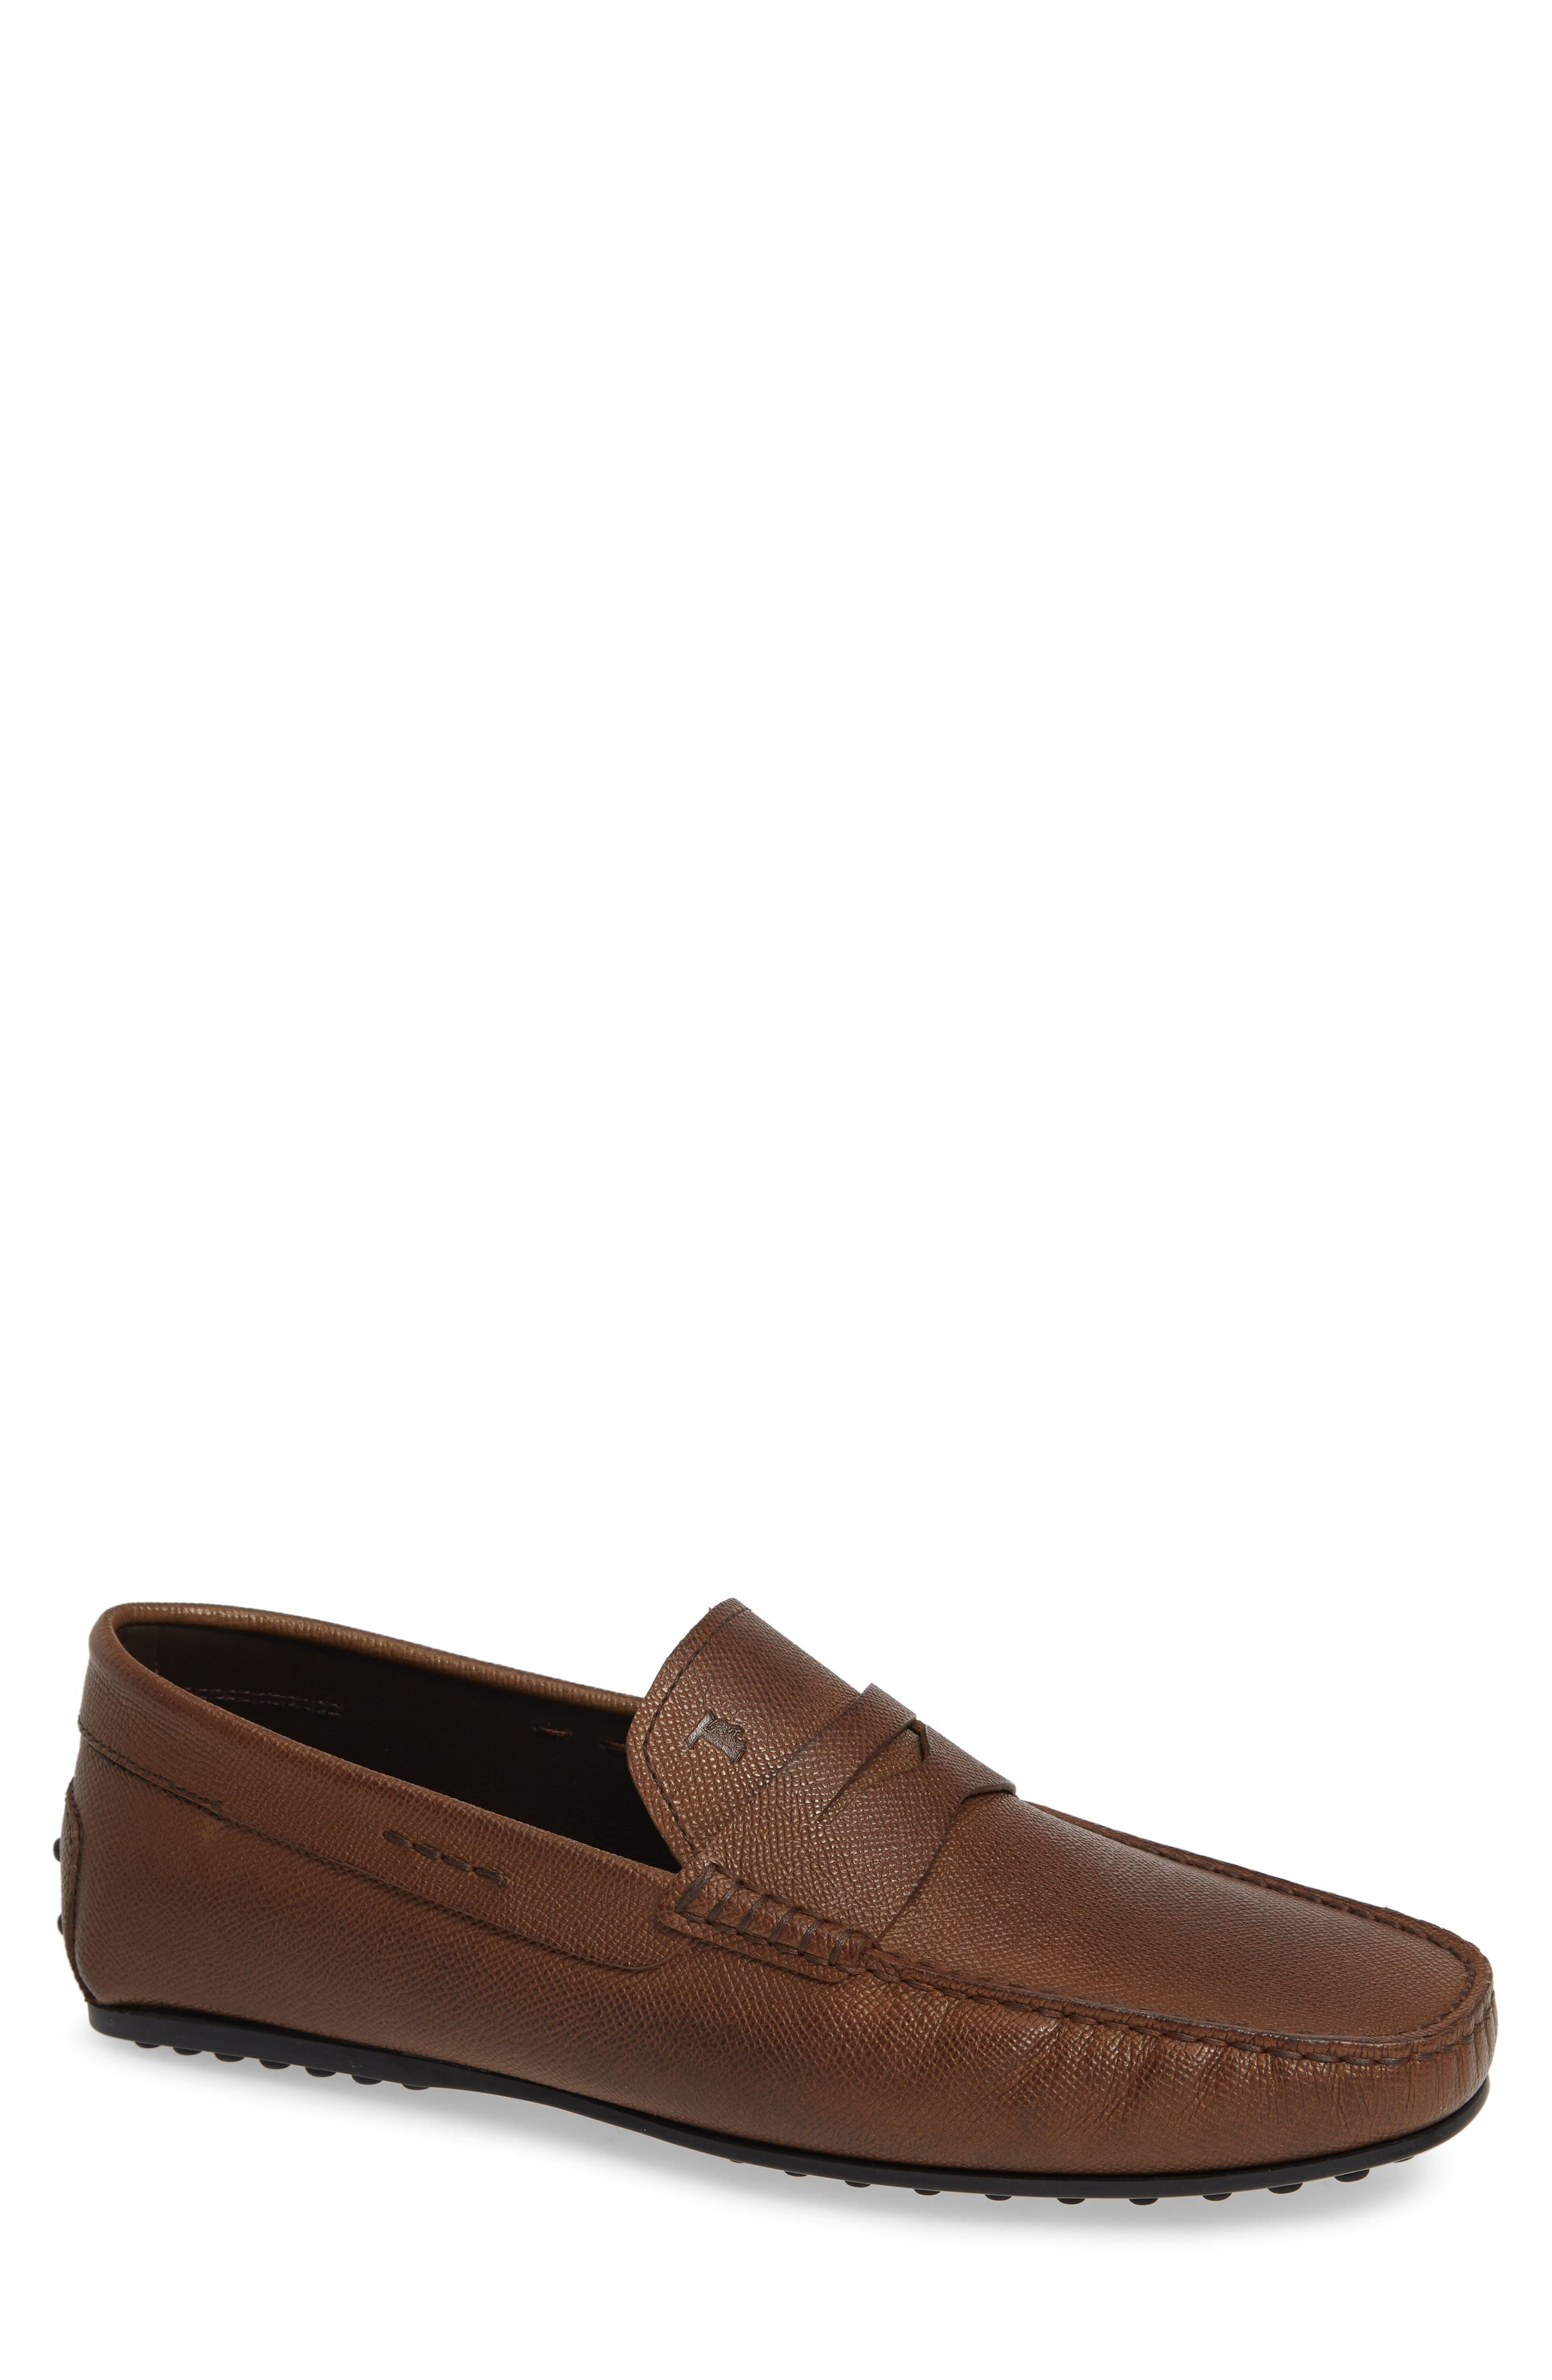 TOD'S 'City' Penny Driving Shoe, Main, color, BROWN